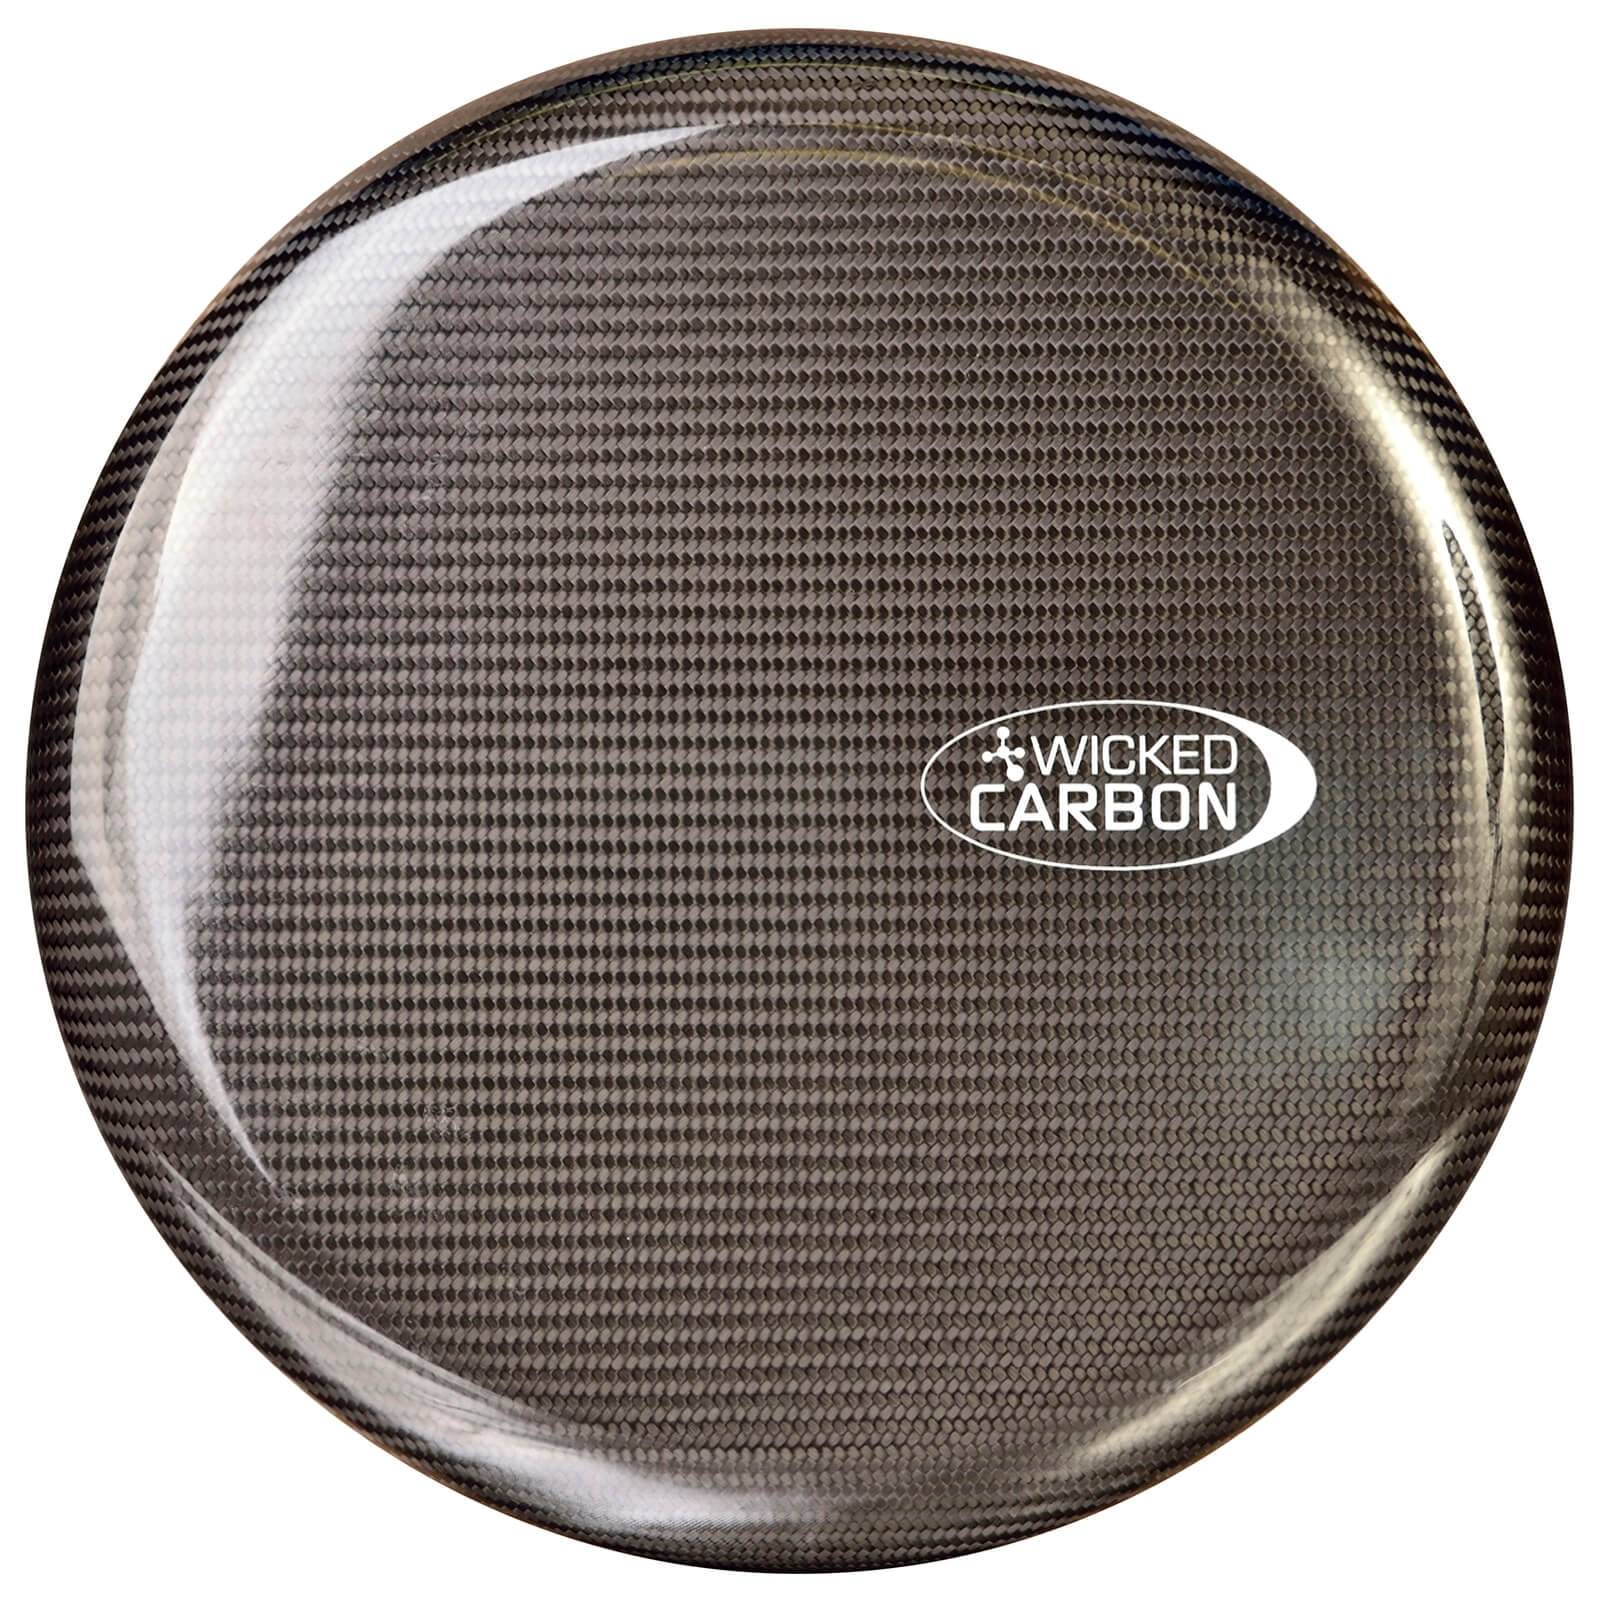 Wicked Sky Rider Carbon Frisbee - Limited Edition